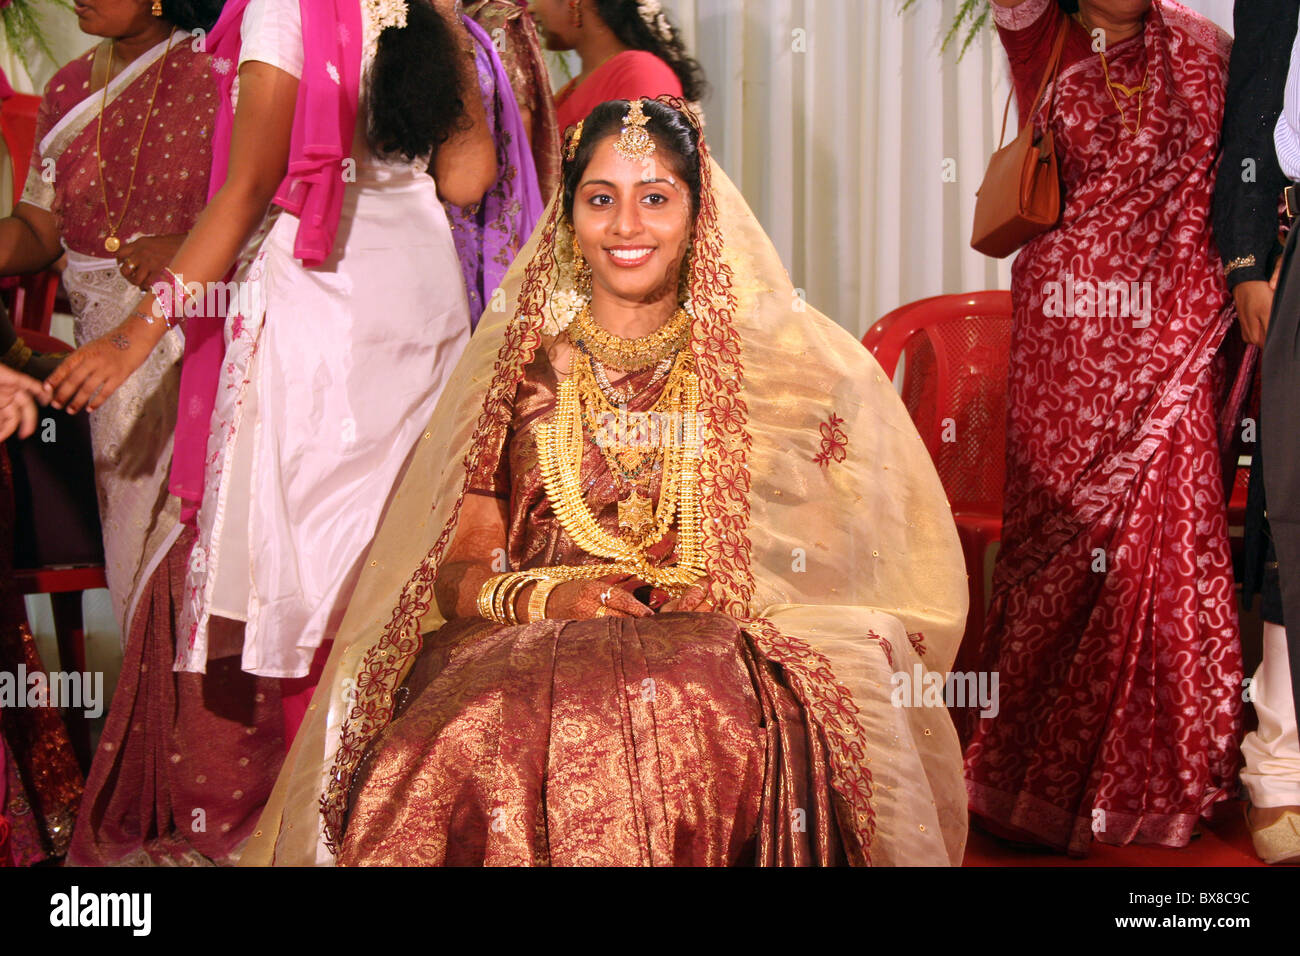 Muslim Bride at her marriage in India - Stock Image